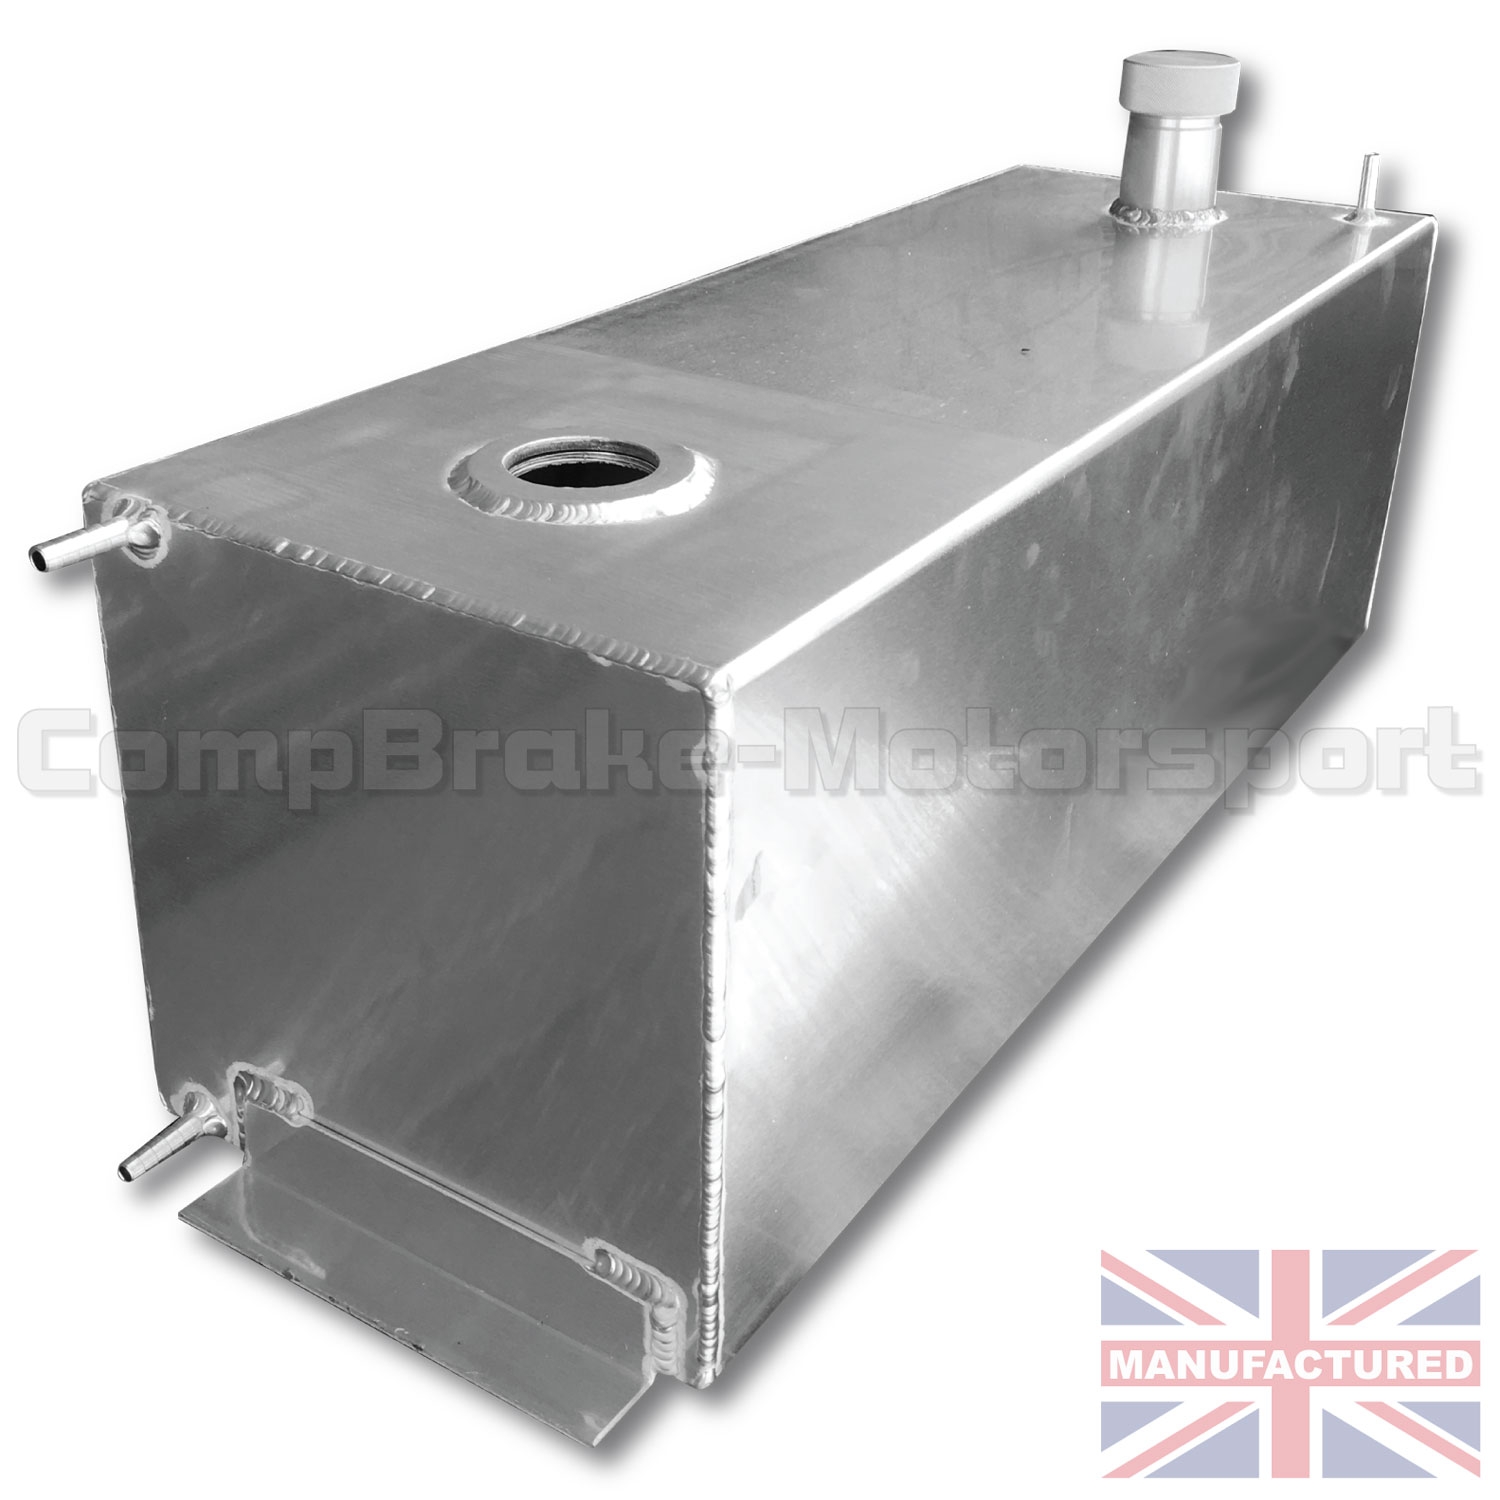 Cmb Ft Fuel Tank Square Gallon Ltr H Mm X W Mm X L Mm X Filler Neck Baffled Skew